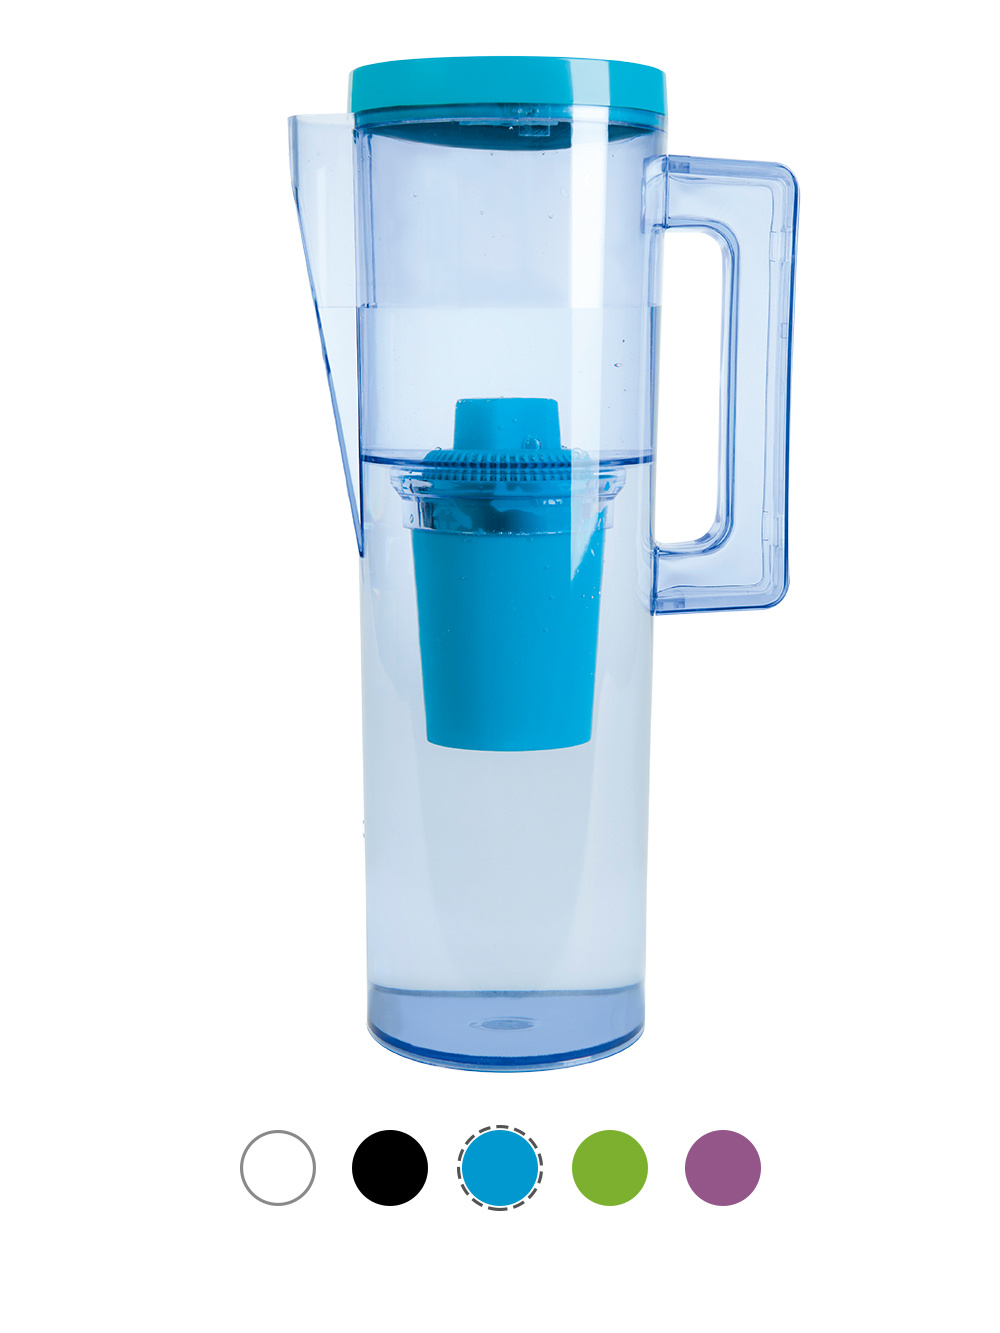 aok-106-water-filter-jug-1.jpg